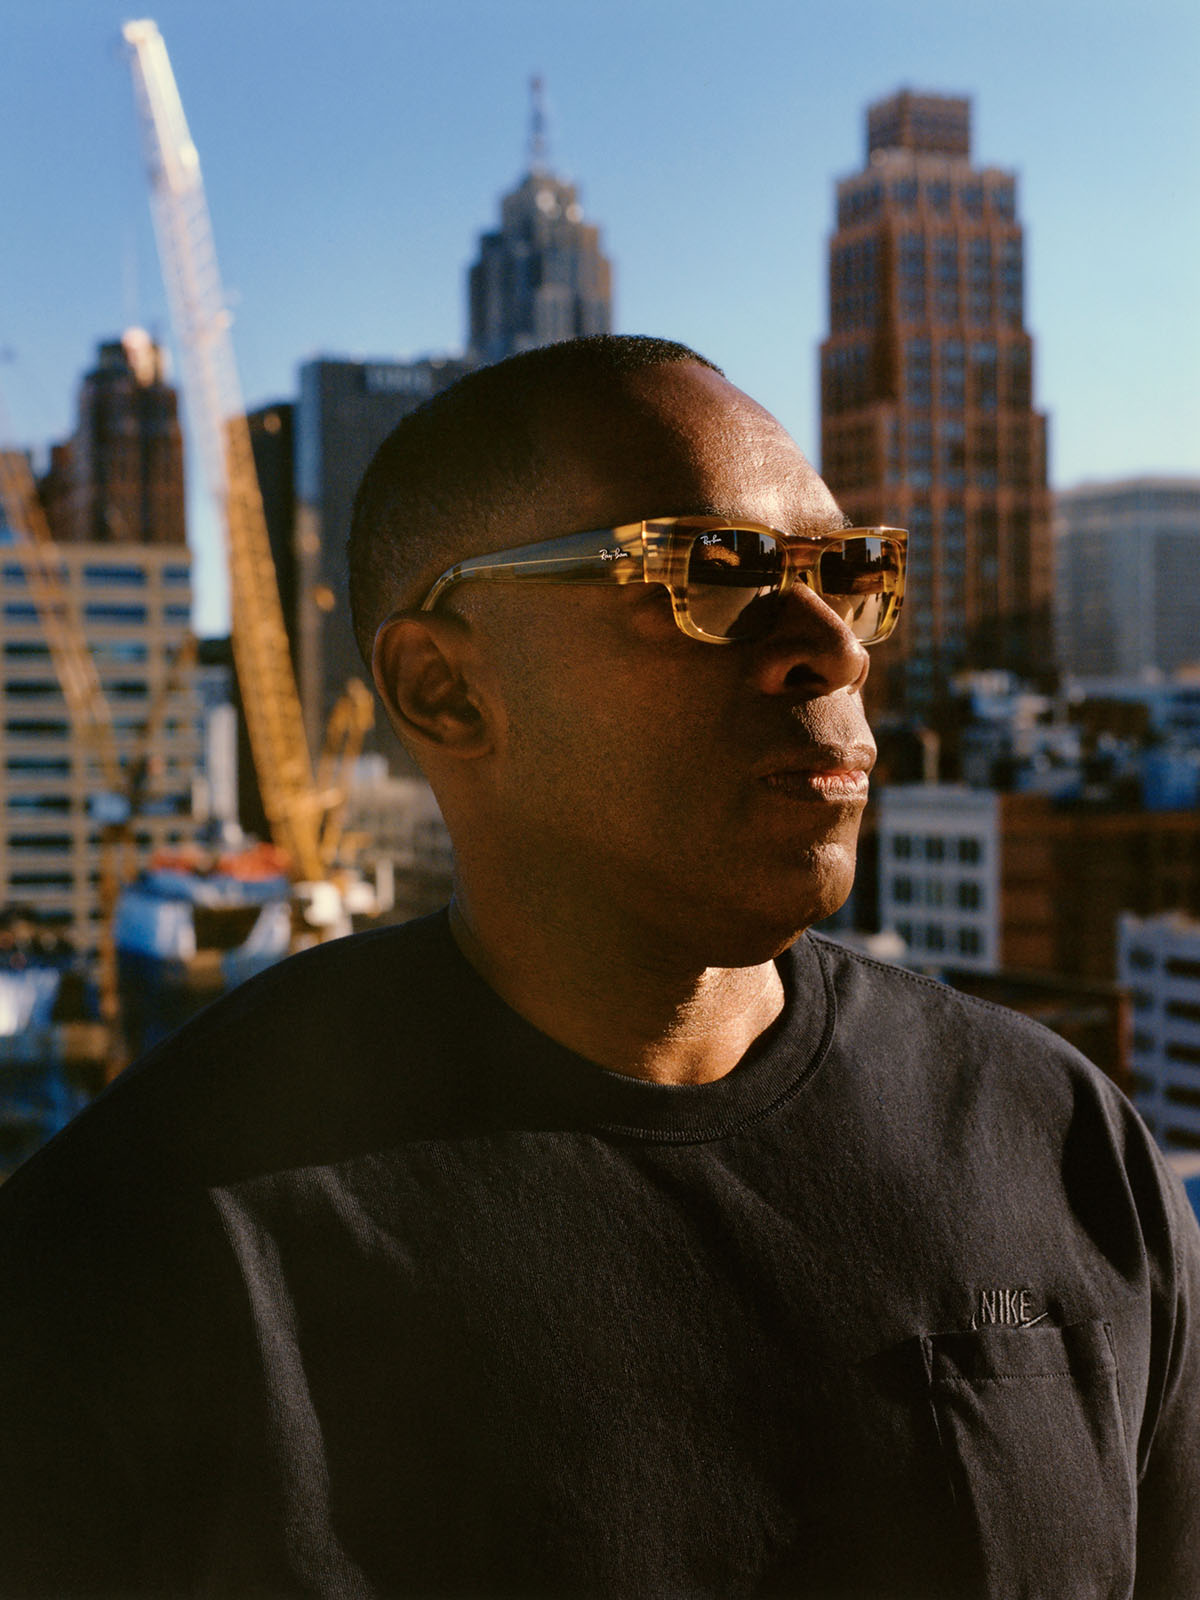 DJ Minx Selects: Kevin Saunderson, 'Belleville Three' producer who elevated Detroit techno to the top of dance charts